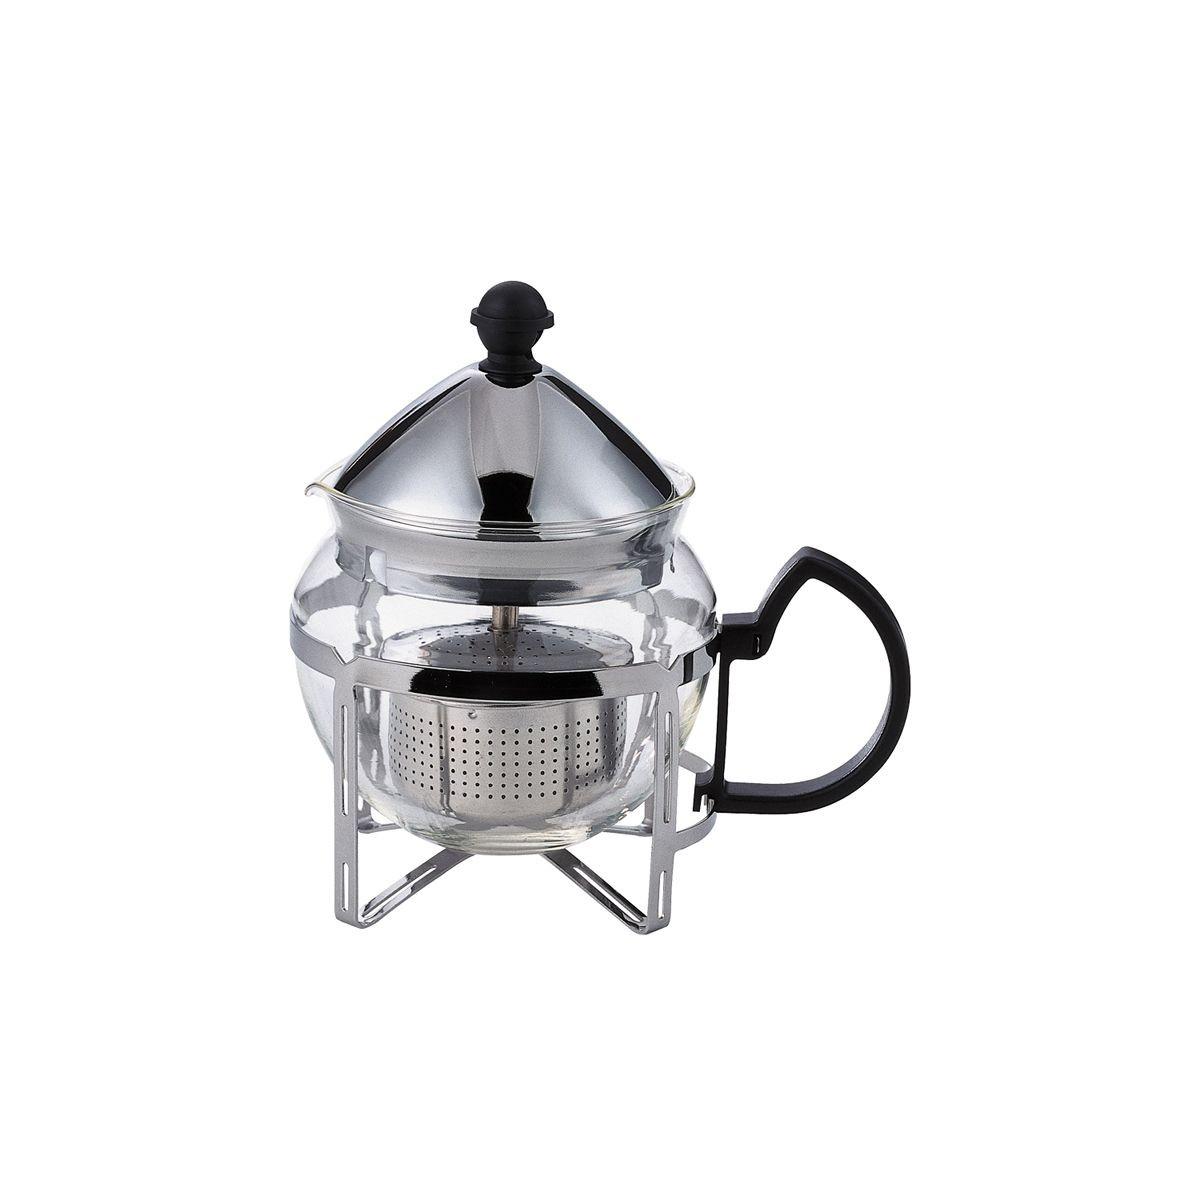 Service Ideas T600CC Stainless Steel Tea Press .6 Liter